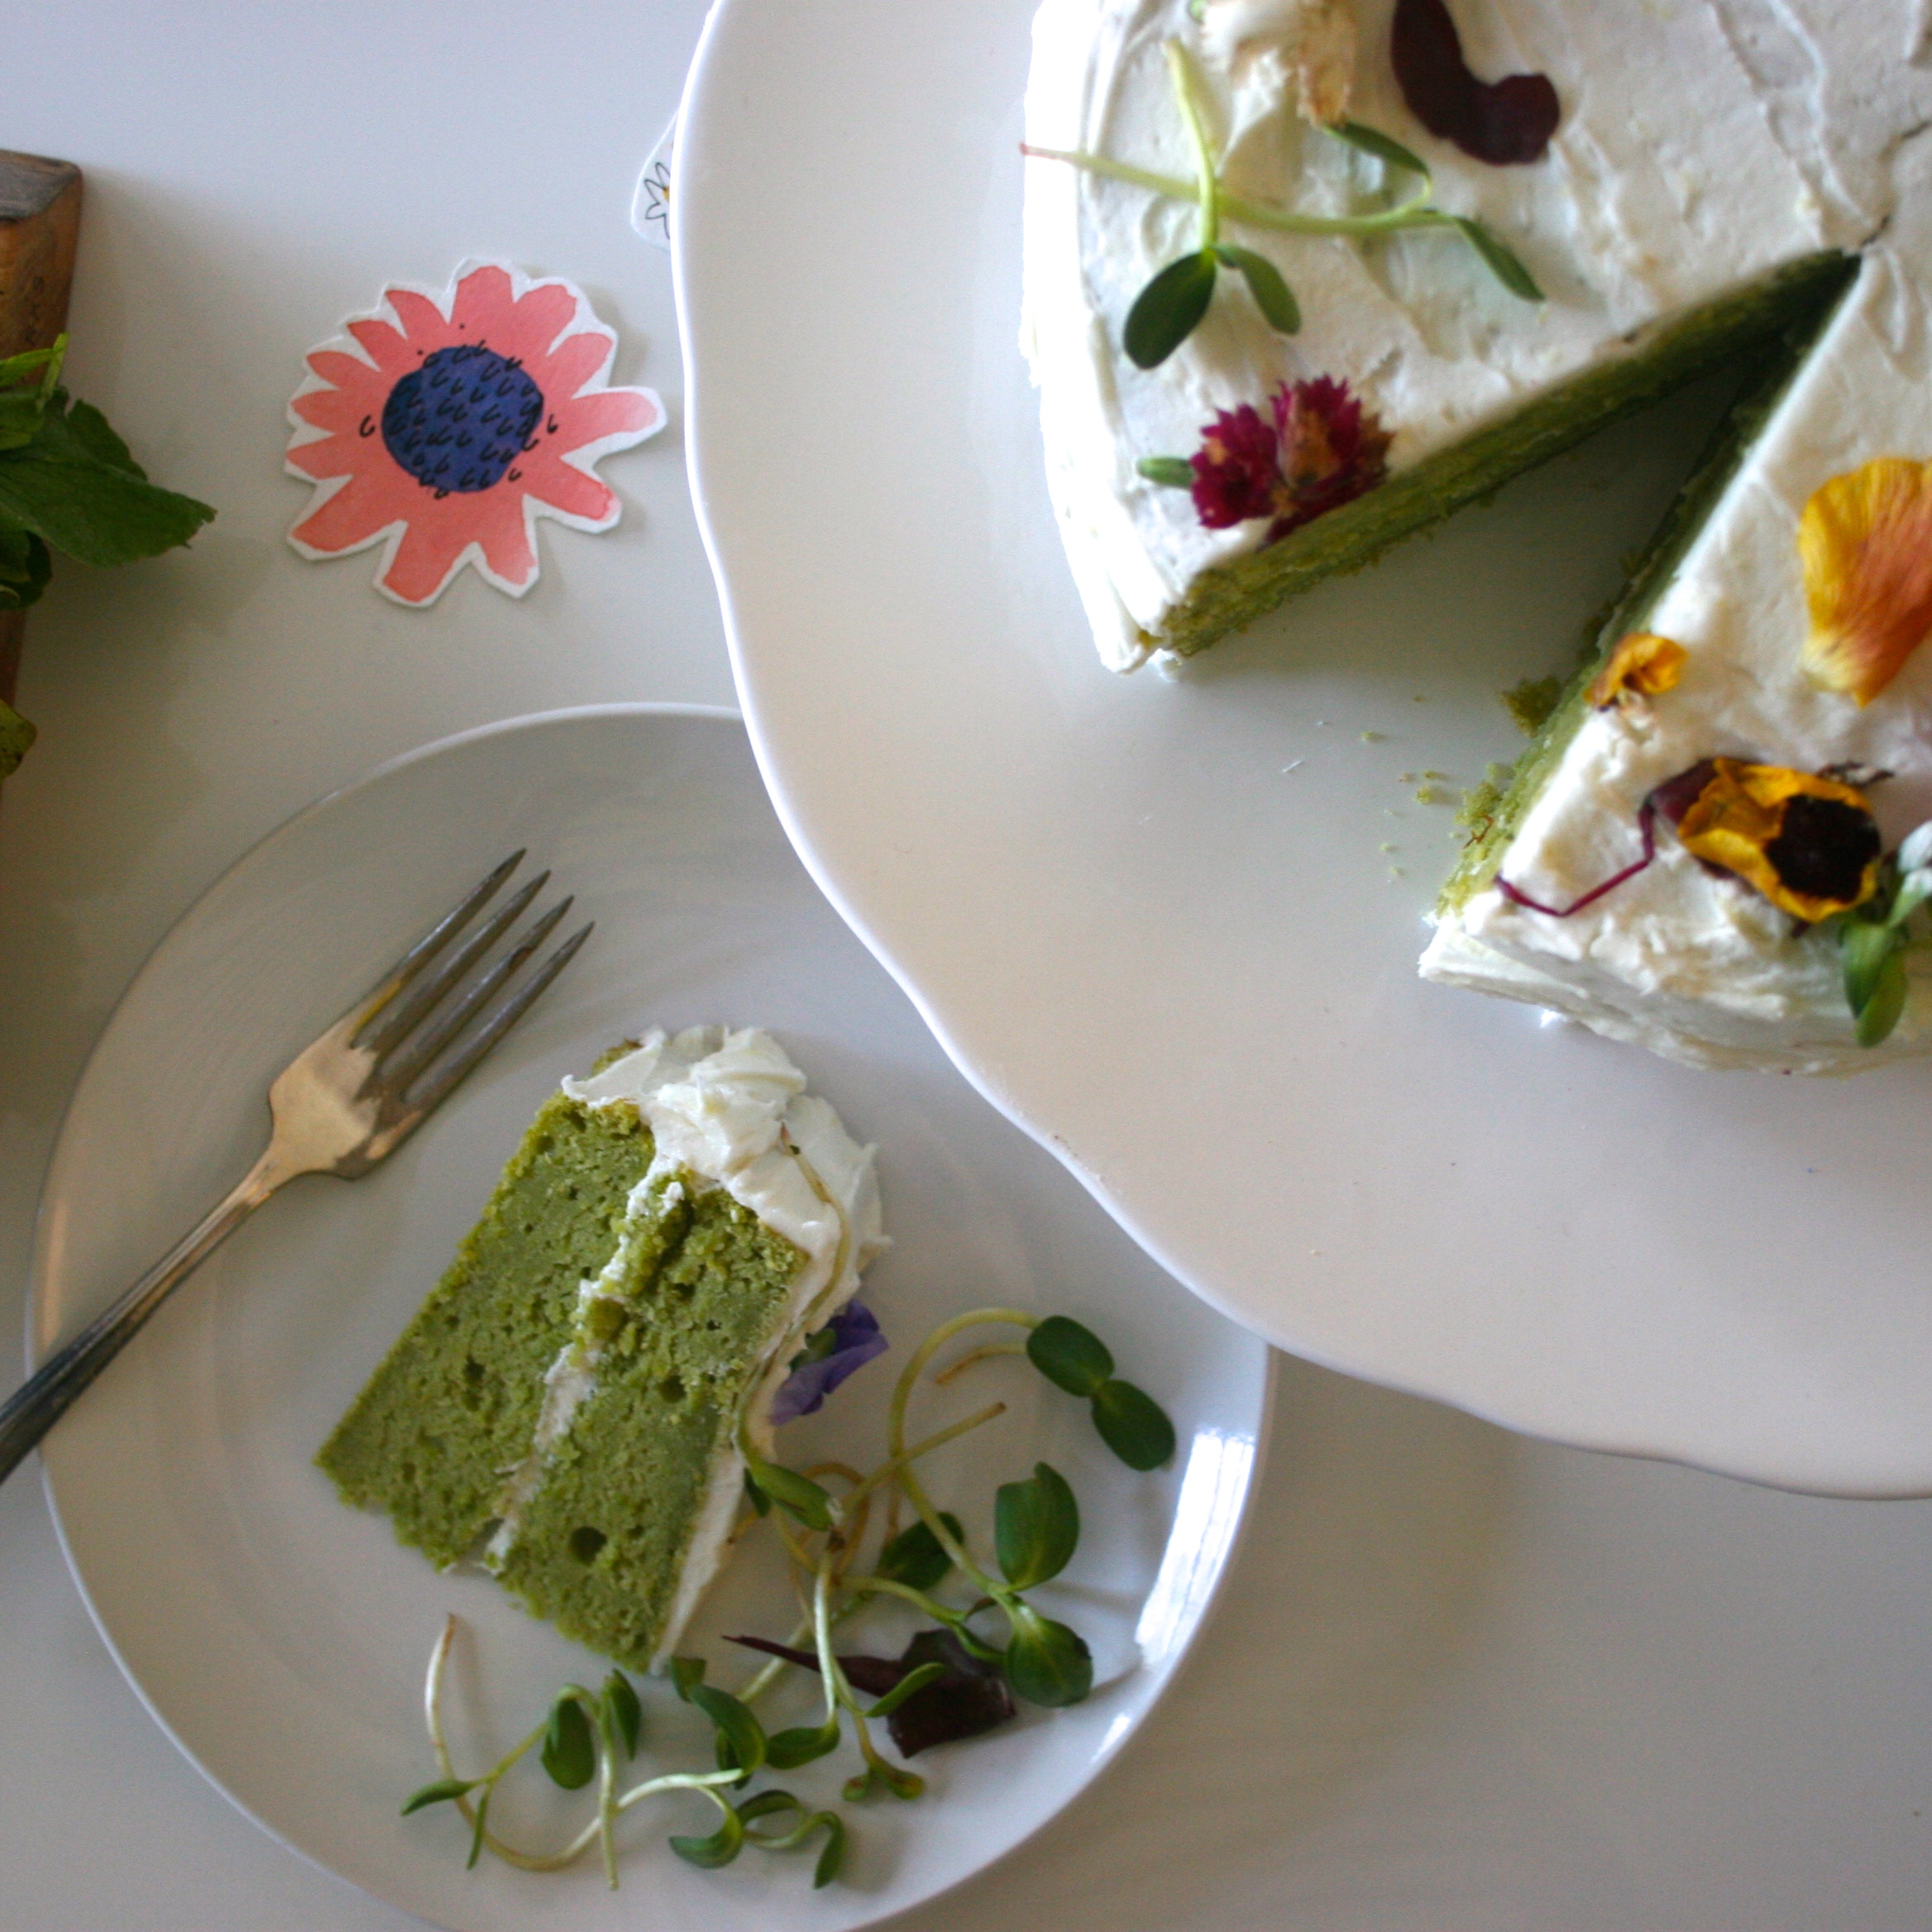 sweet pea cake, photo by Emily Hilliard